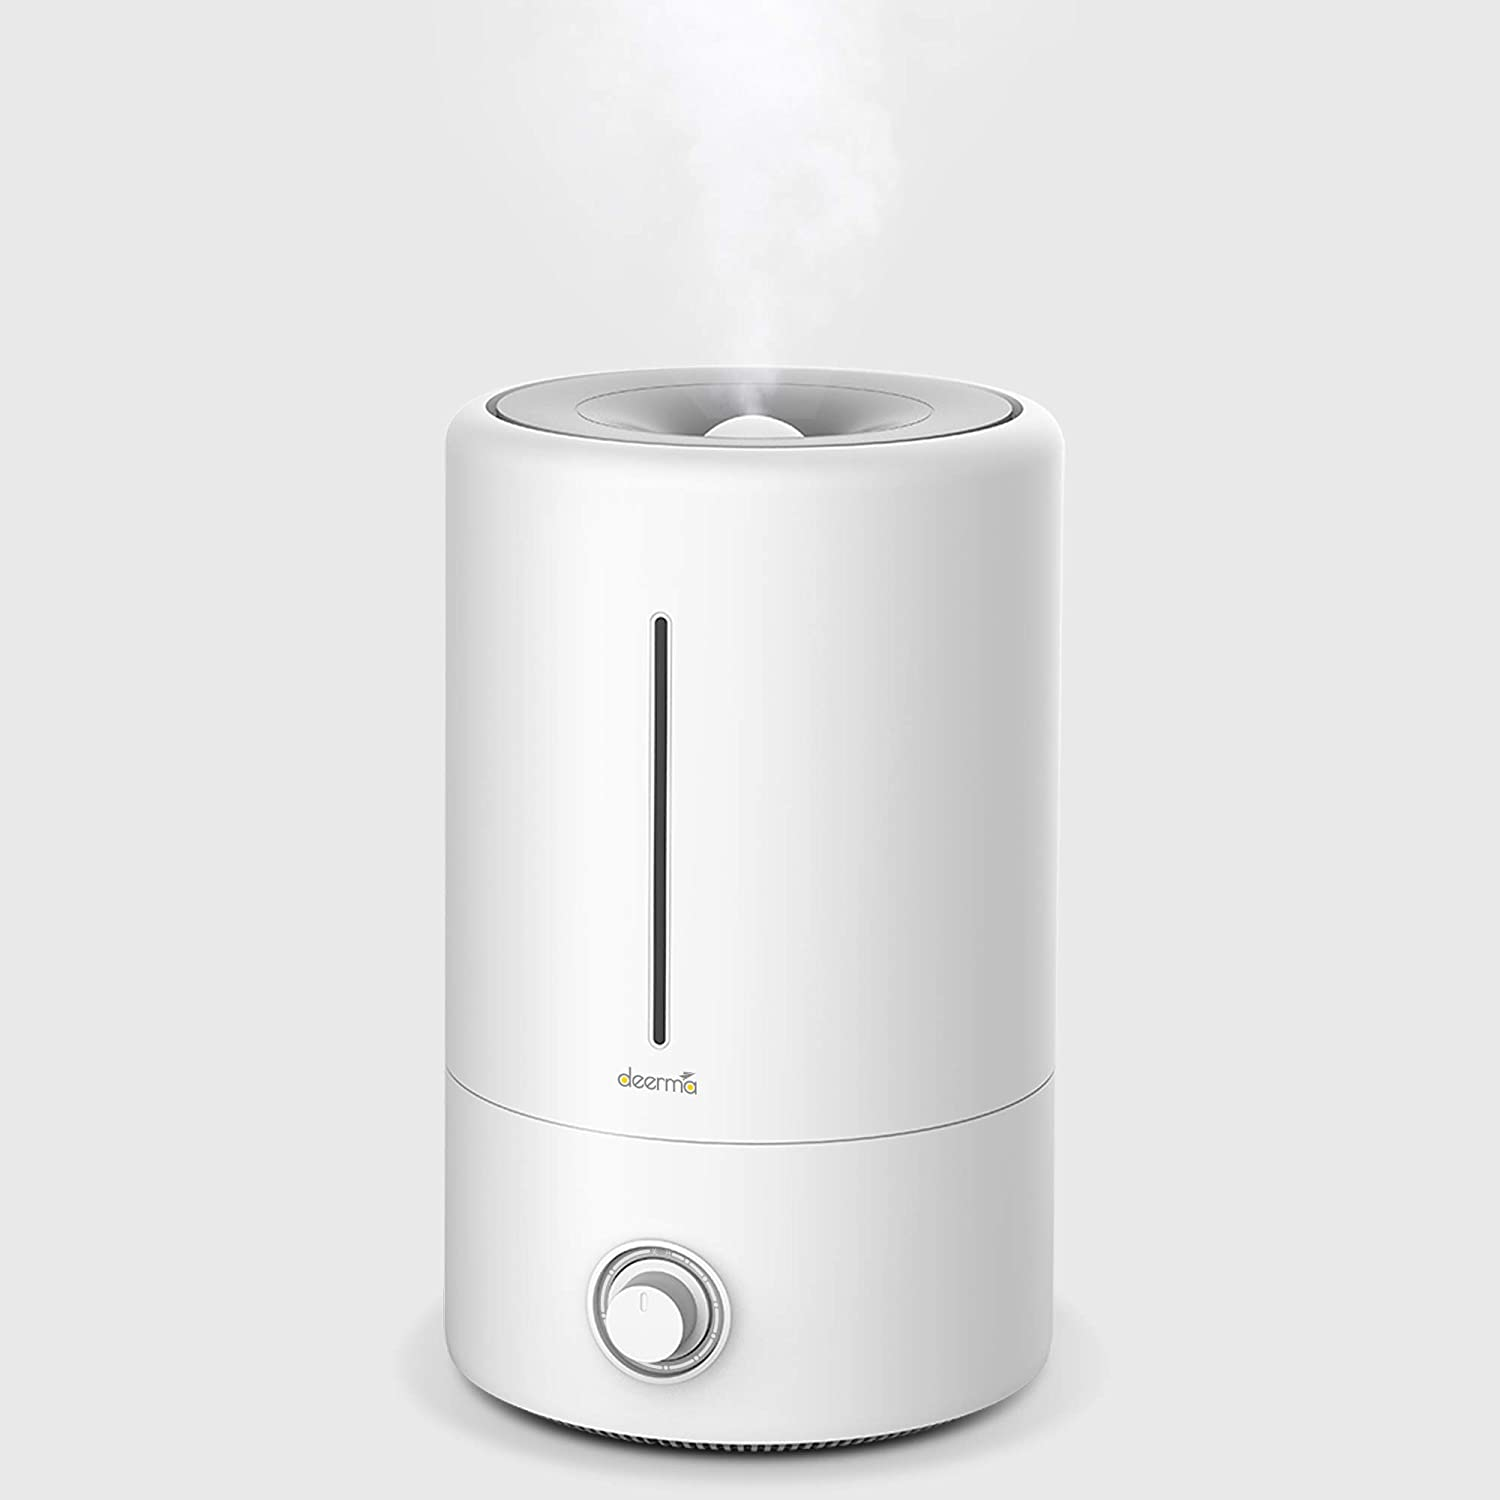 Deerma F628 Humidifier with NanoG Ultra MicroPore Technology